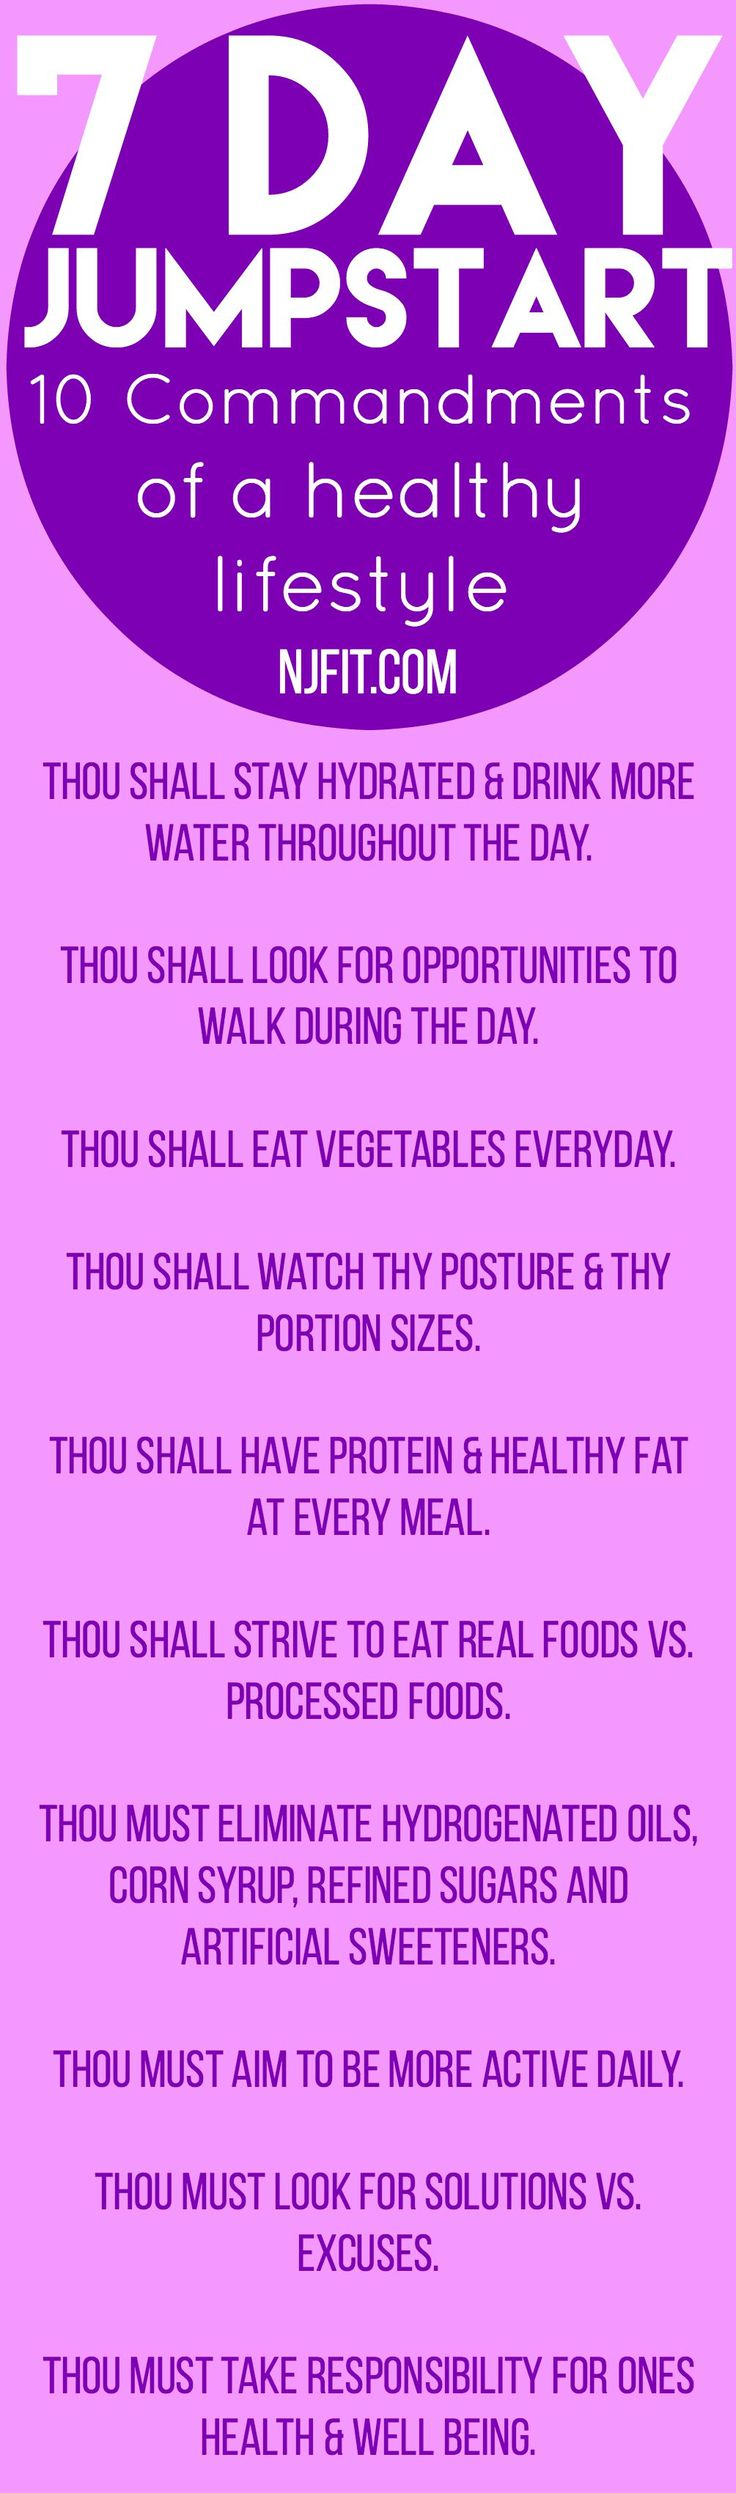 Follow these 10 commandments for a healthier life! 7 days that will teach you the habits to change your life forever. Detailed nutrition program to help you reduce cravings, get rid of the bloat, get your energy back, jump start your weight loss and feel SO MUCH BETTER. Learn more about the 7 day jump start at 7dayjumpstart.com